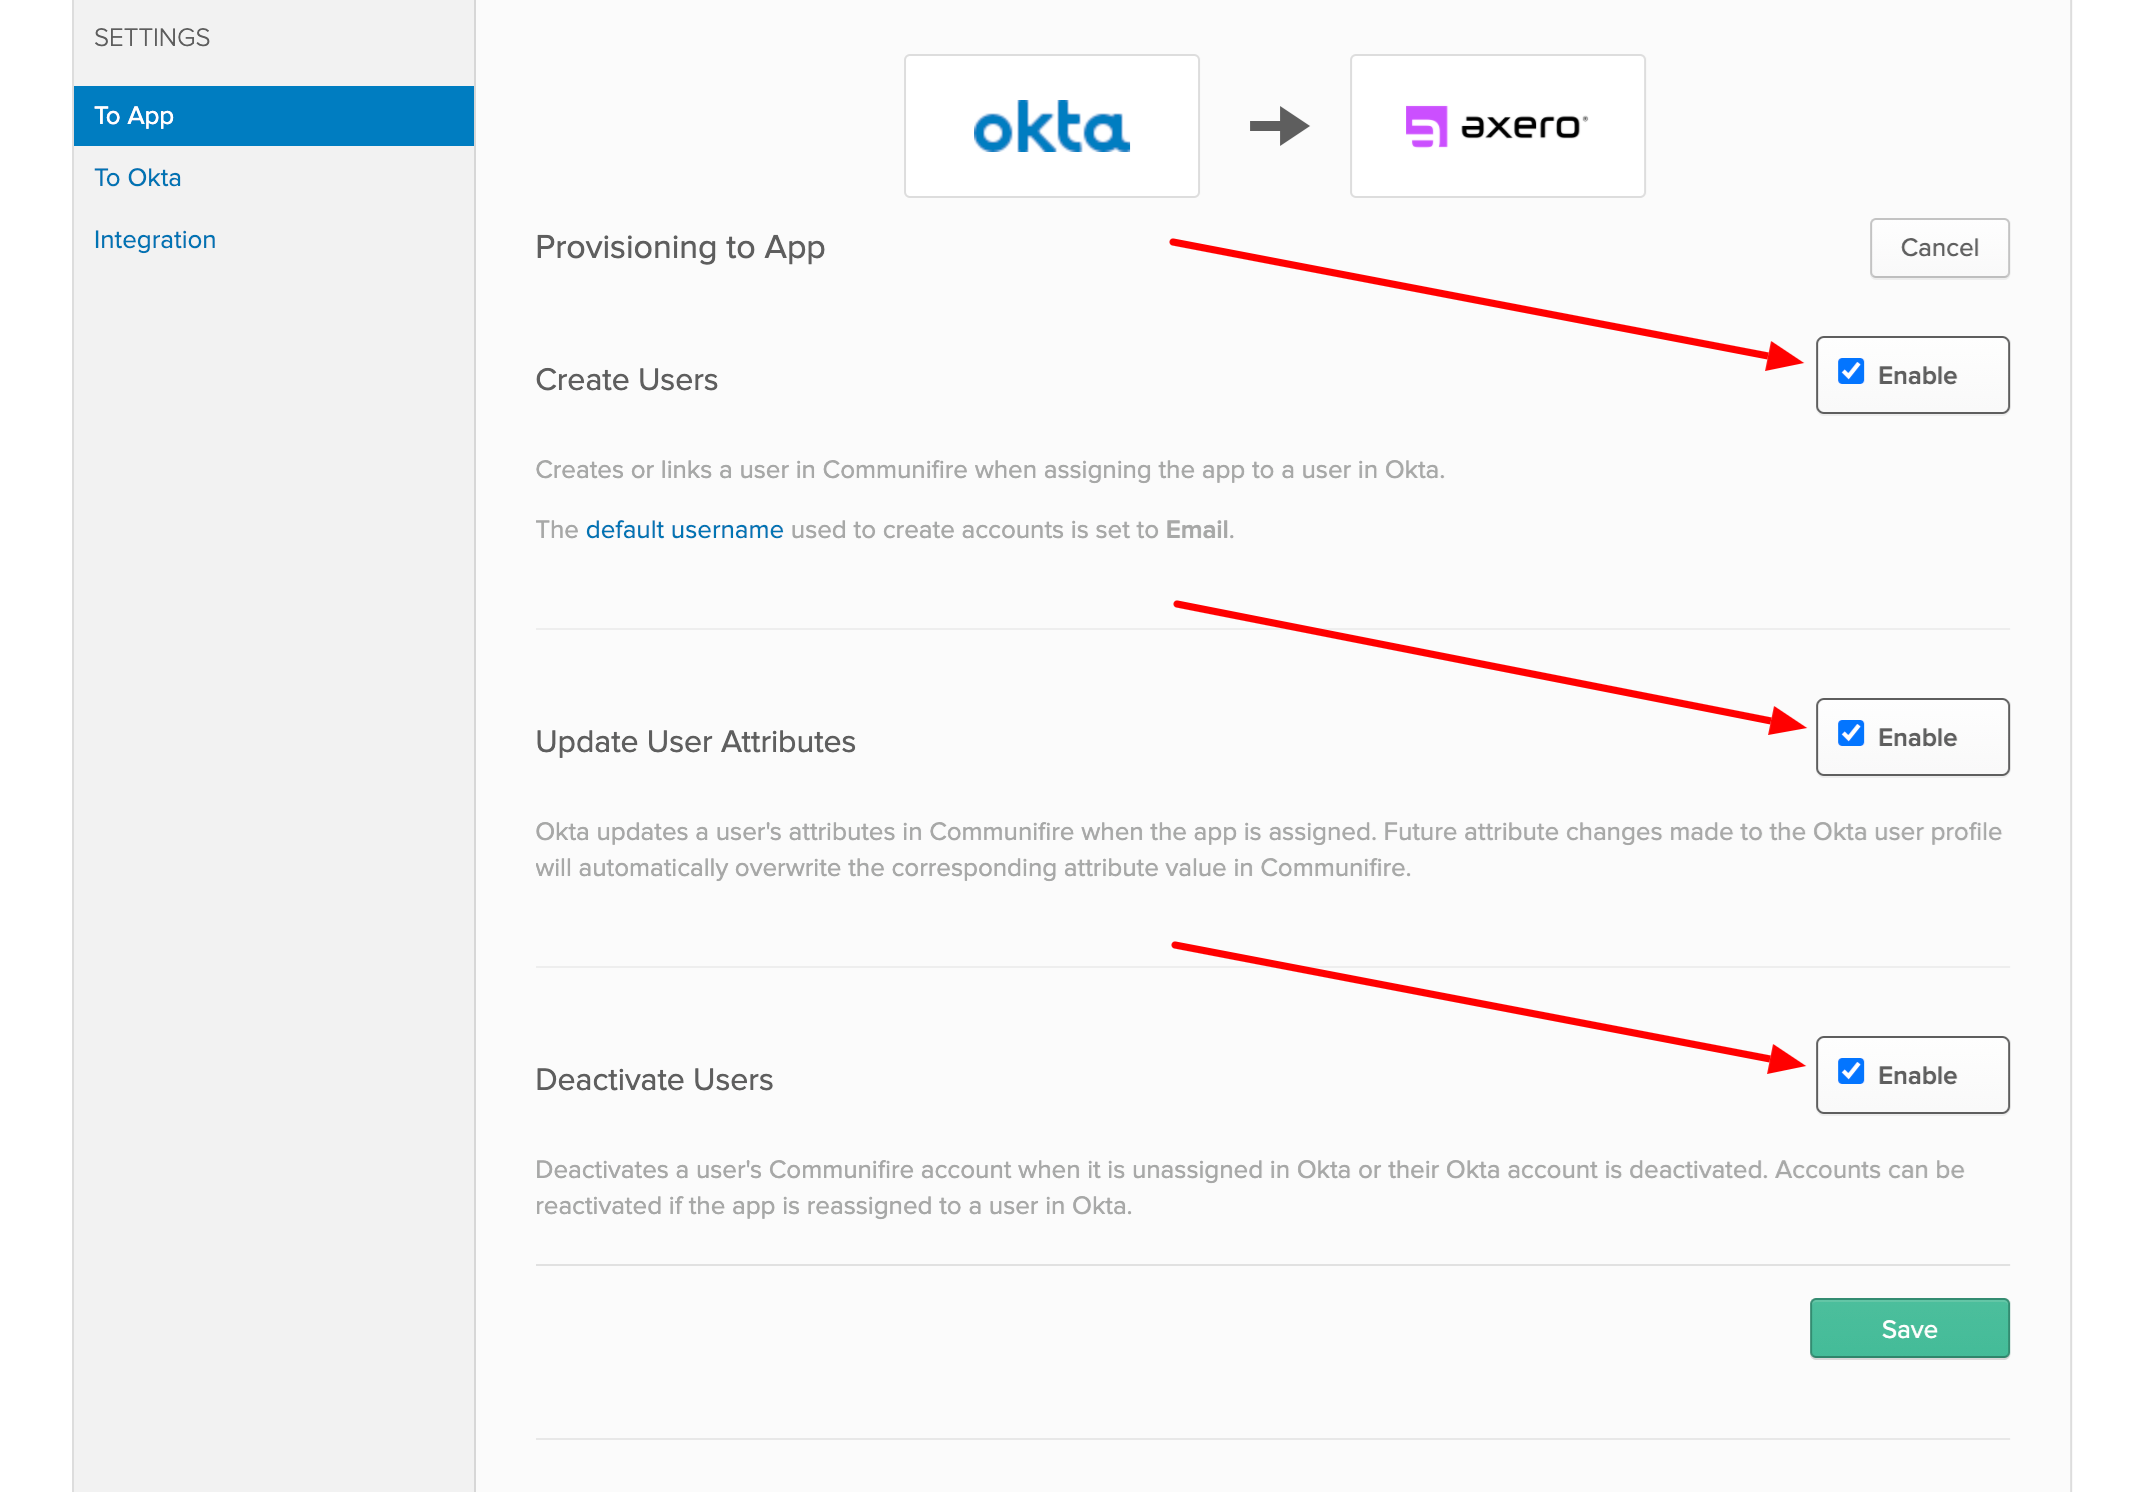 Enable Create Users, Update User Attributes, and Deactivate Users